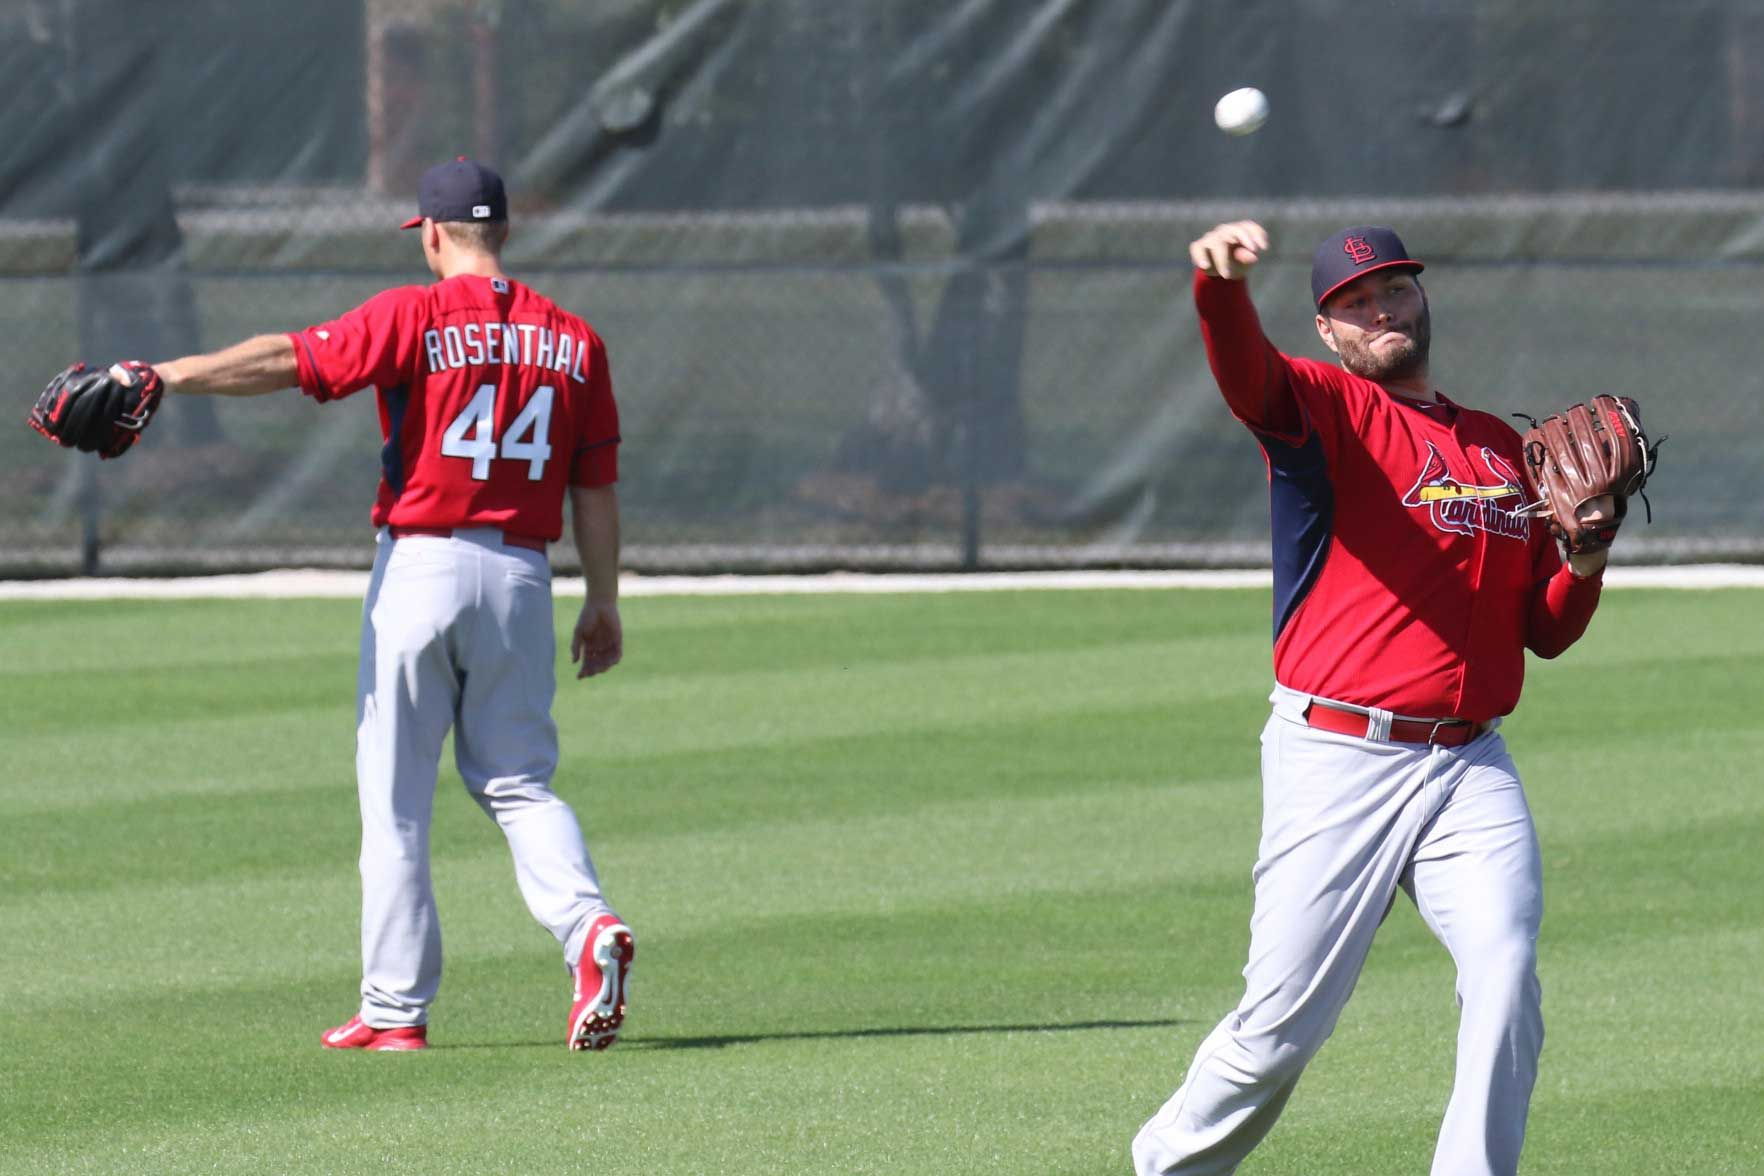 Lance Lynn & Trever Rosenthall warming up First Day of Cardinals Spring Training 2015 | this pin made possible by www.wfpcc.com